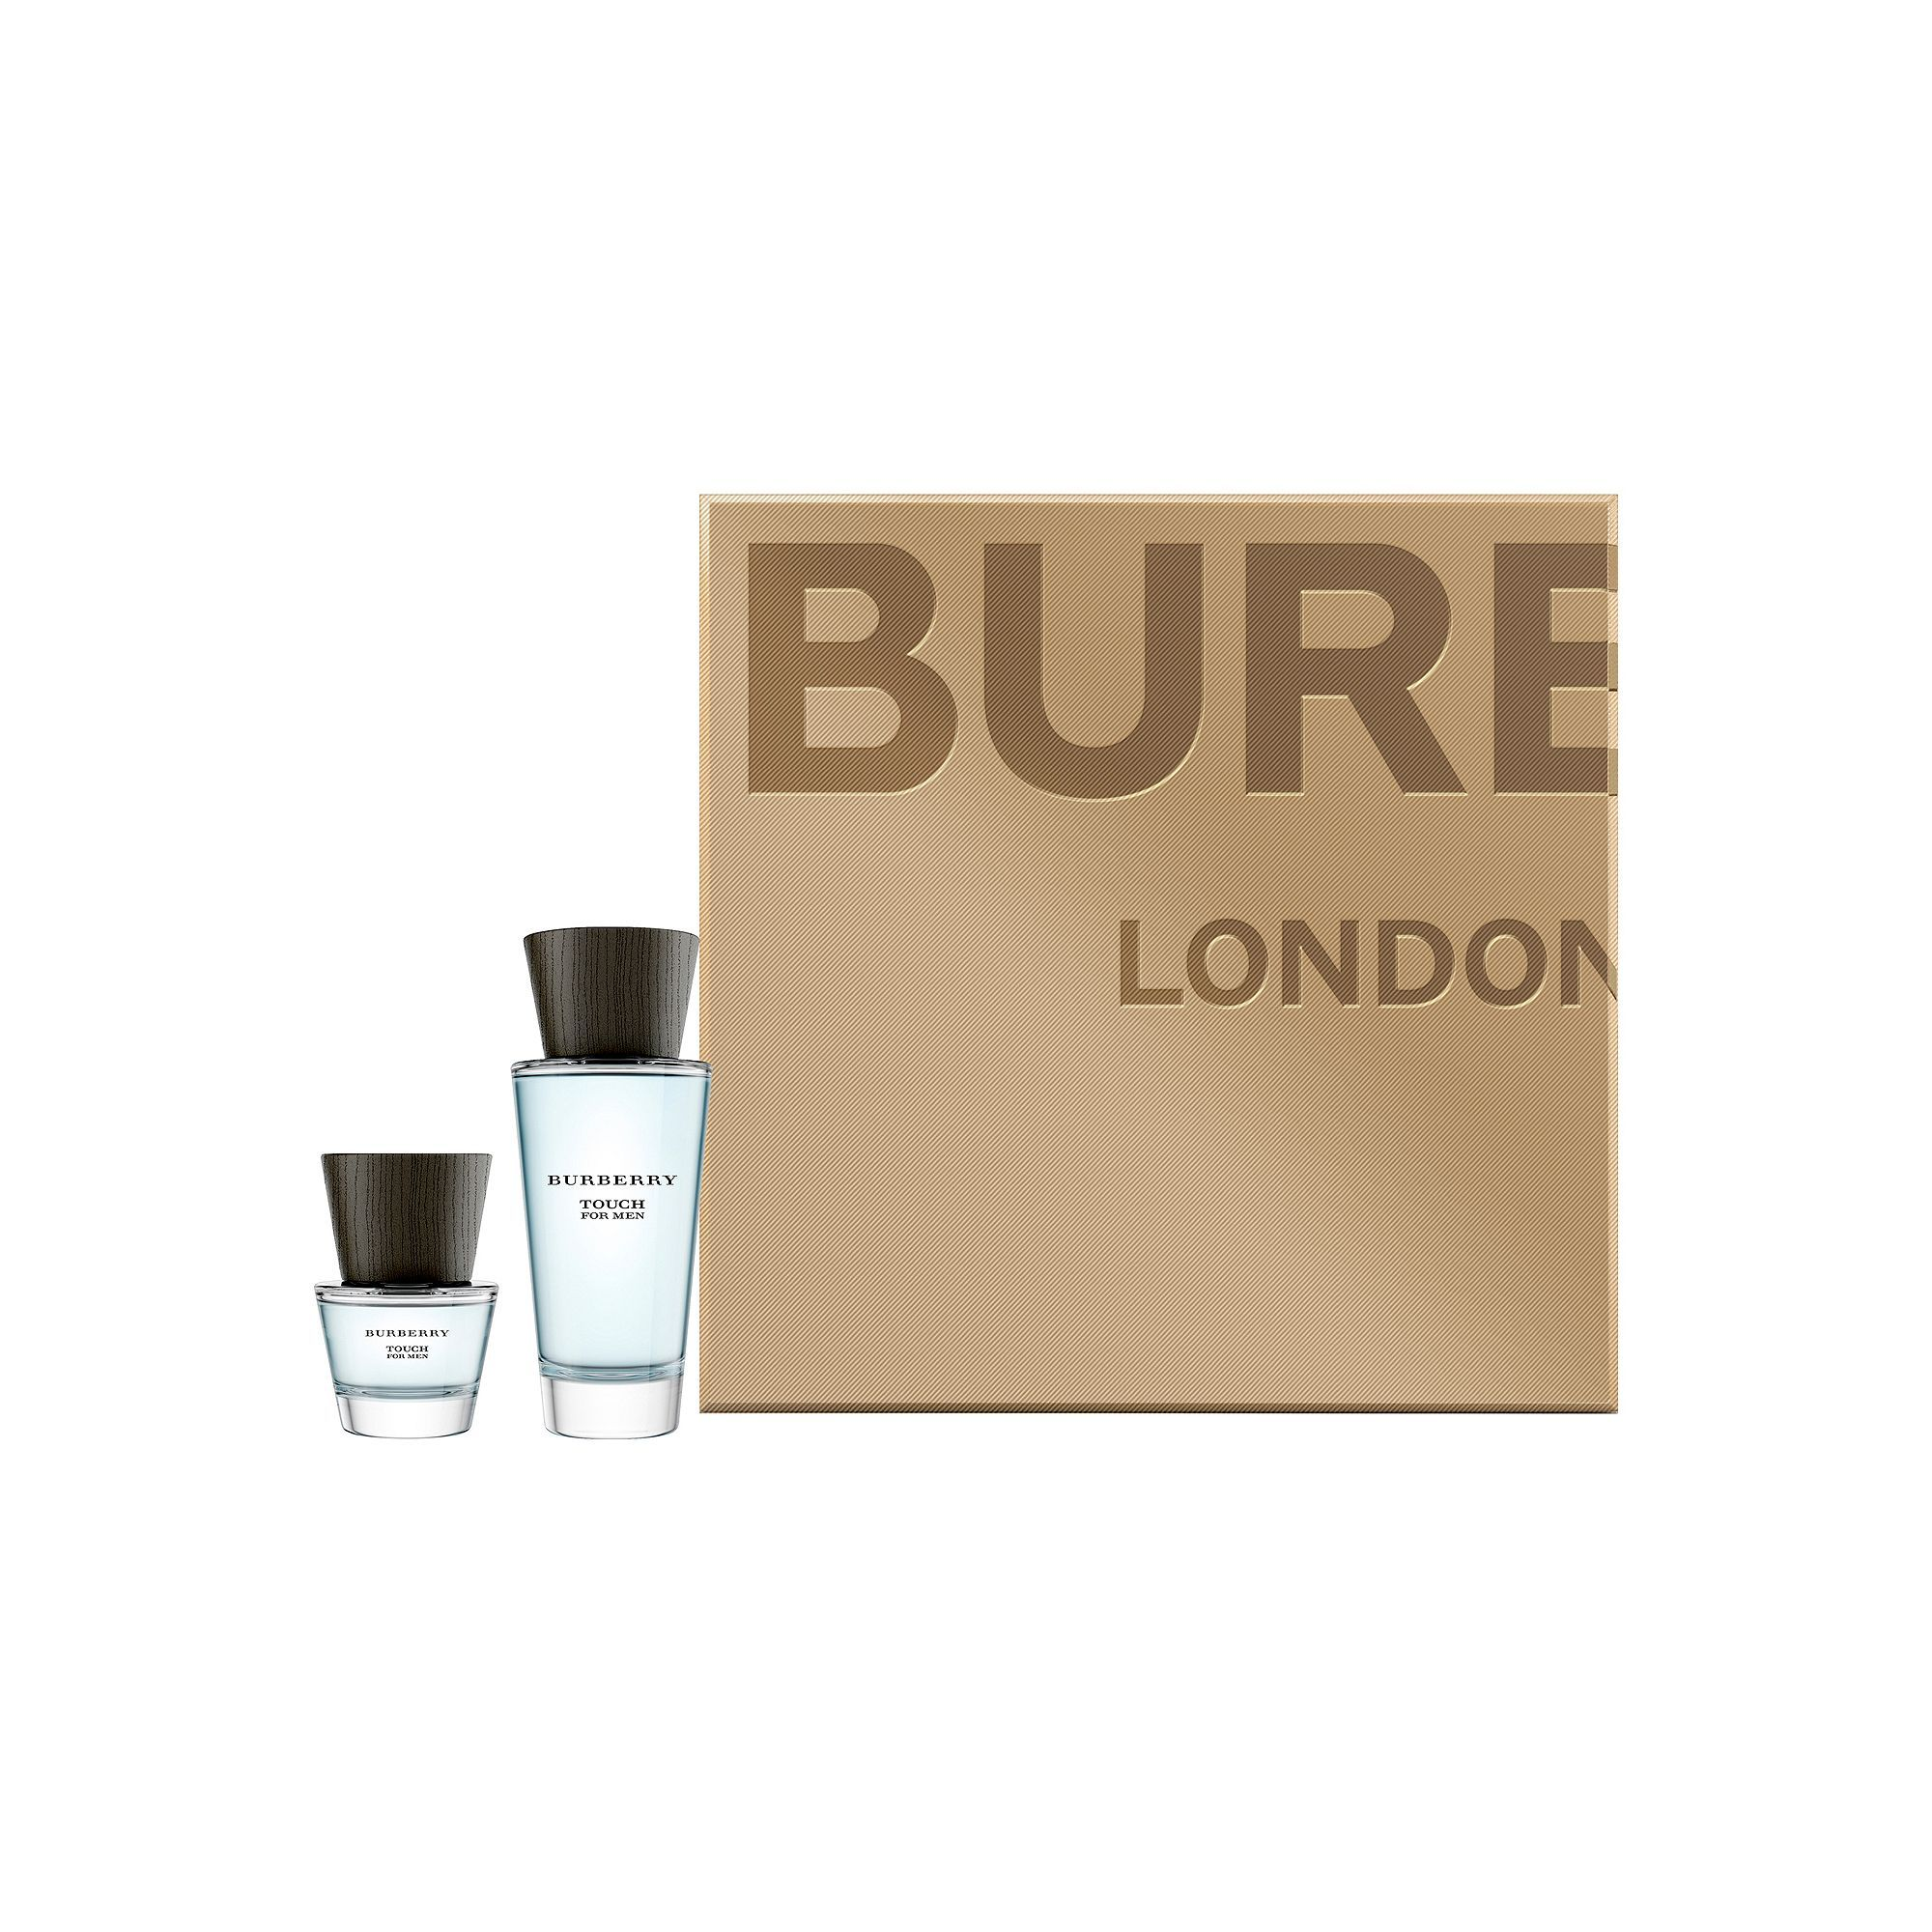 Modern and refreshing, this men's Burberry Touch cologne is ideal for any occasion. Modern and refreshing, this men's Burberry Touch cologne is ideal for any occasion. A $138 VALUE! FRAGRANCE NOTES Top: Mandarin, Violet Middle: Oak Moss, Orris, Pepper Base: Cedar, VetiverFRAGRANCE DETAILS Includes: 3.3 oz, Eau de Toilette Spray, 1.0 oz. Eau de Toilette Spray Due to its contents, this product cannot be shipped via our Priority Service or sent to Alaska, Hawaii, and/or APO/FPO military addresses.